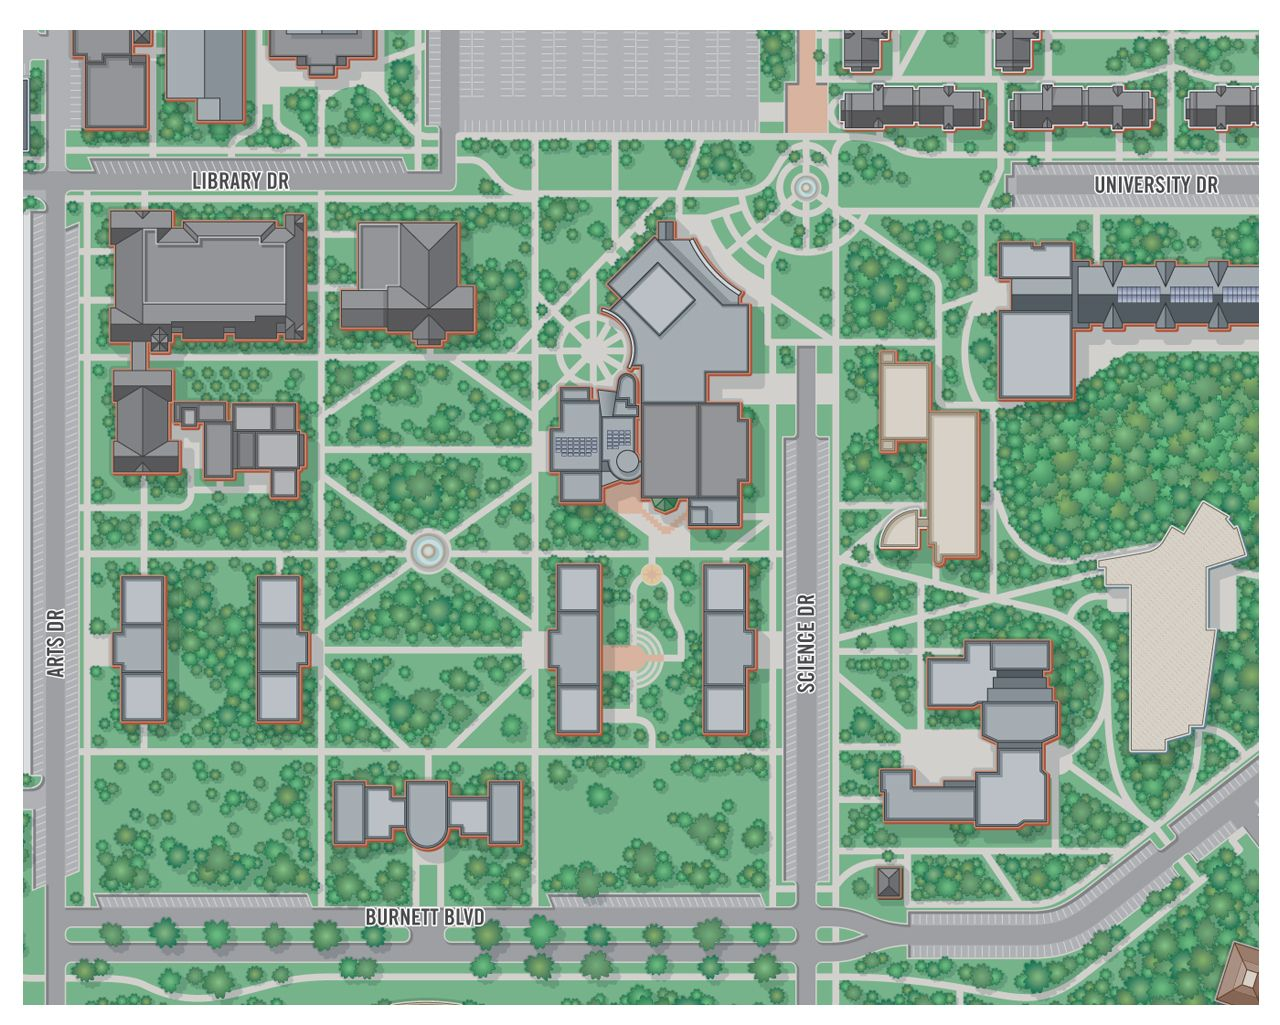 college campus map illustration Armstrong State University | 3D